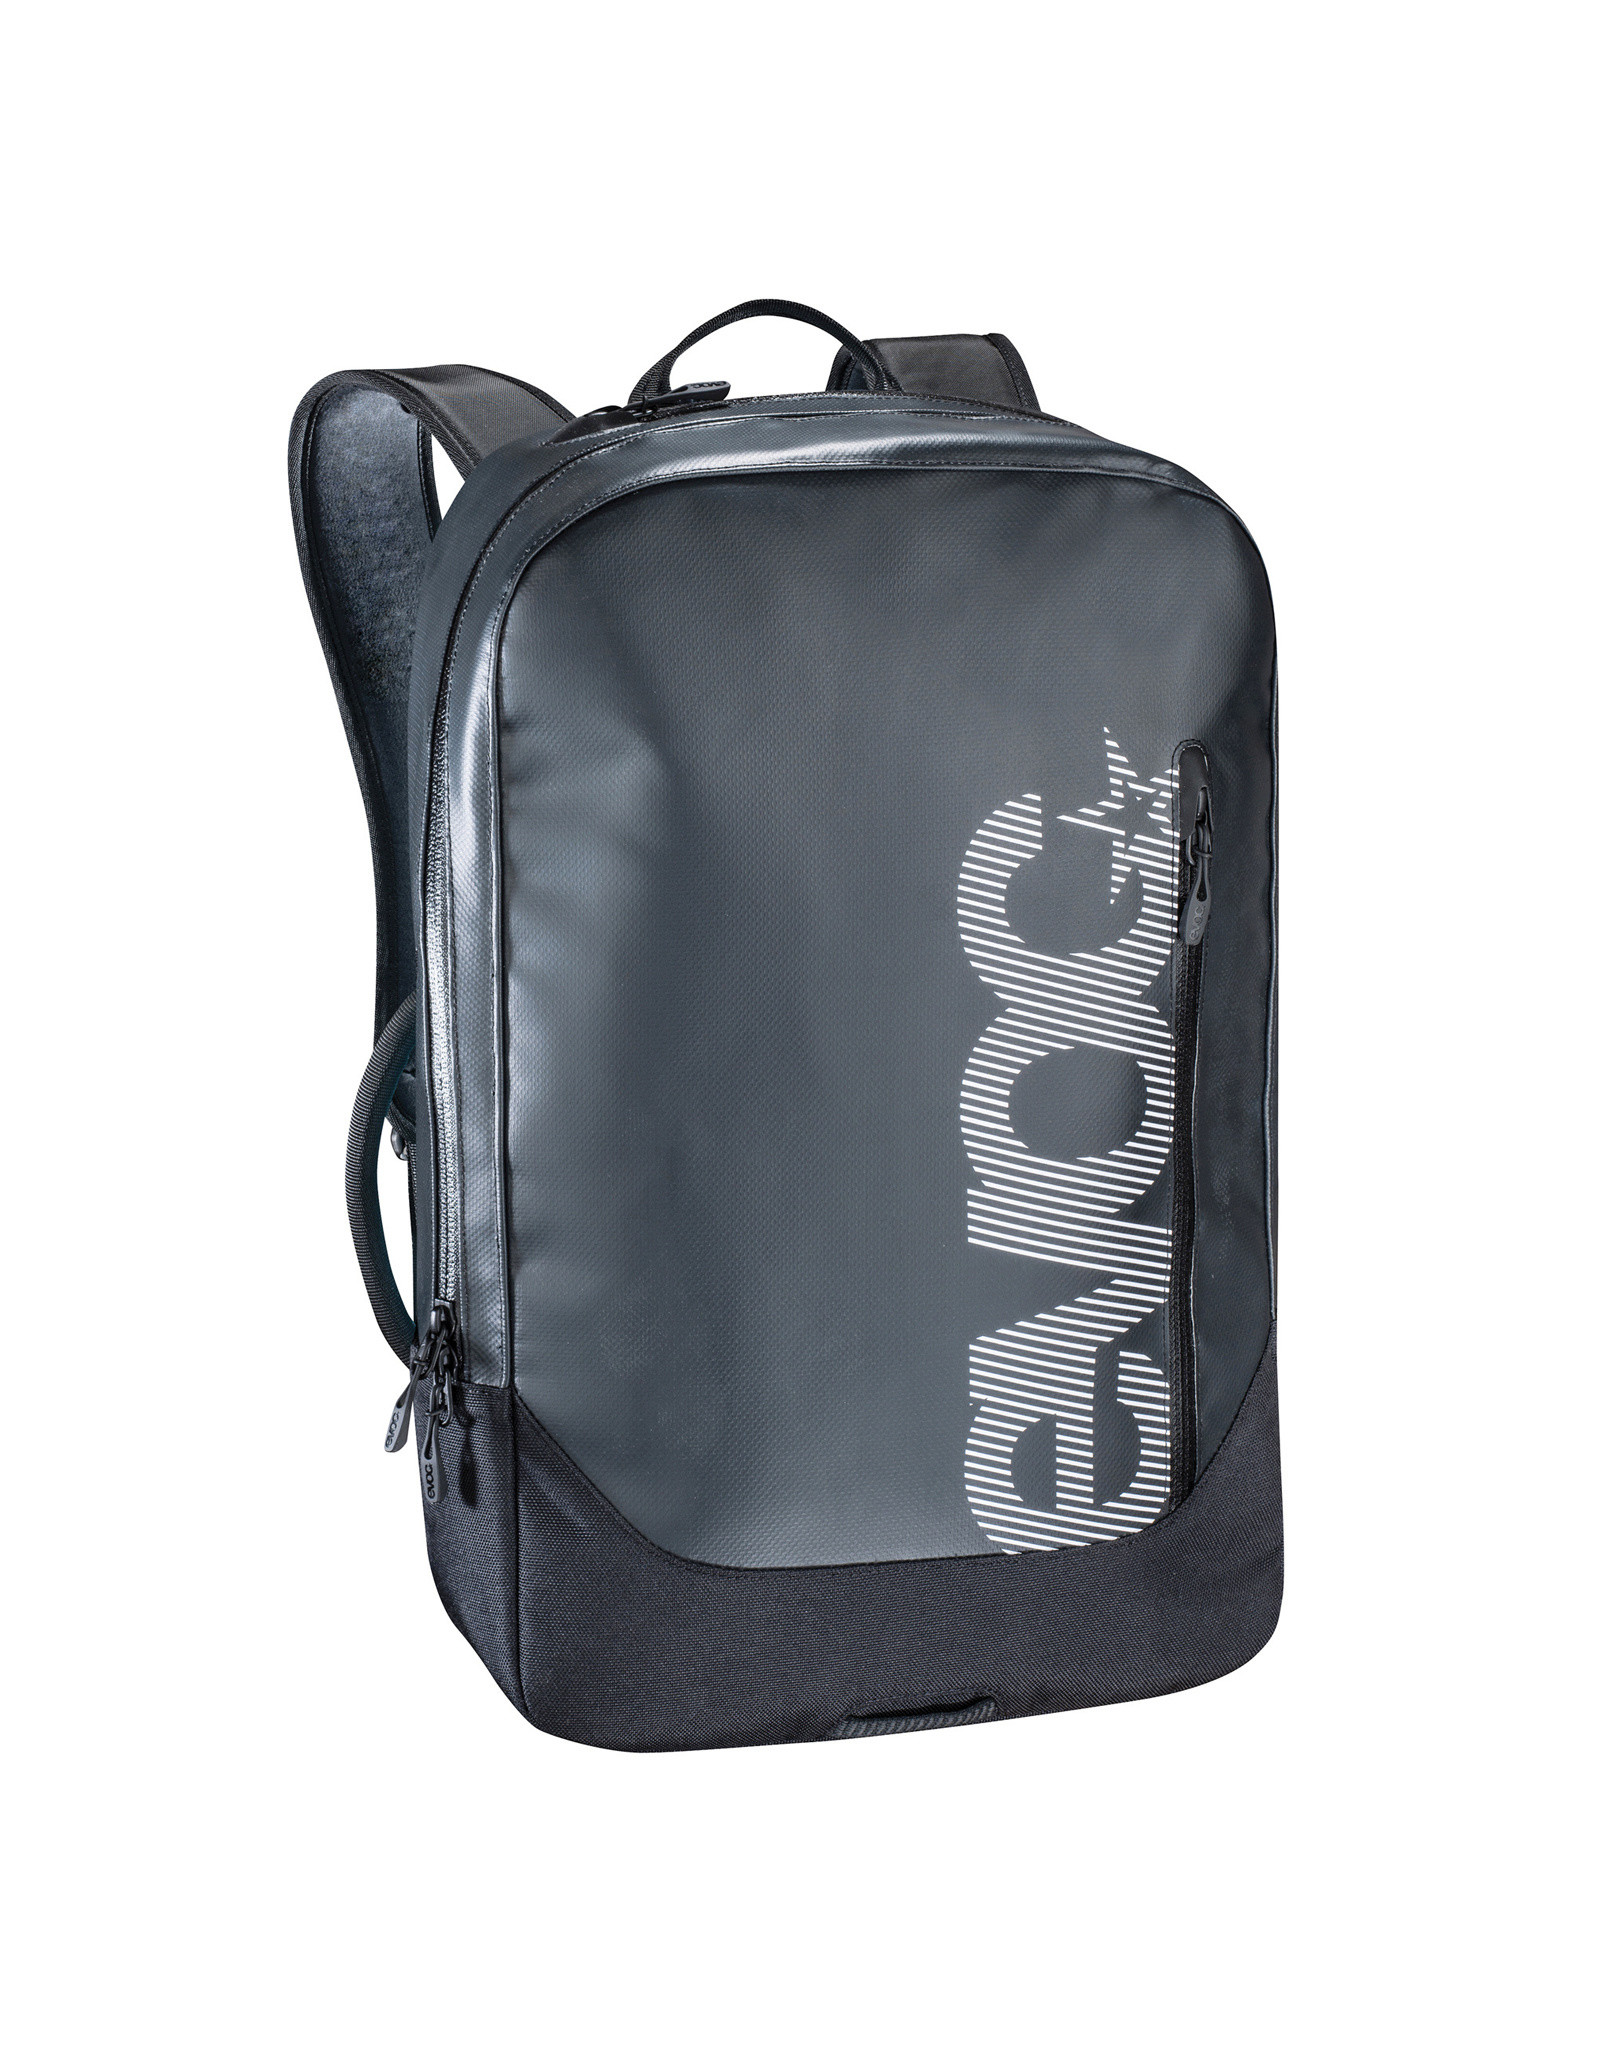 EVOC EVOC, Commuter Bag, 18L, Noir